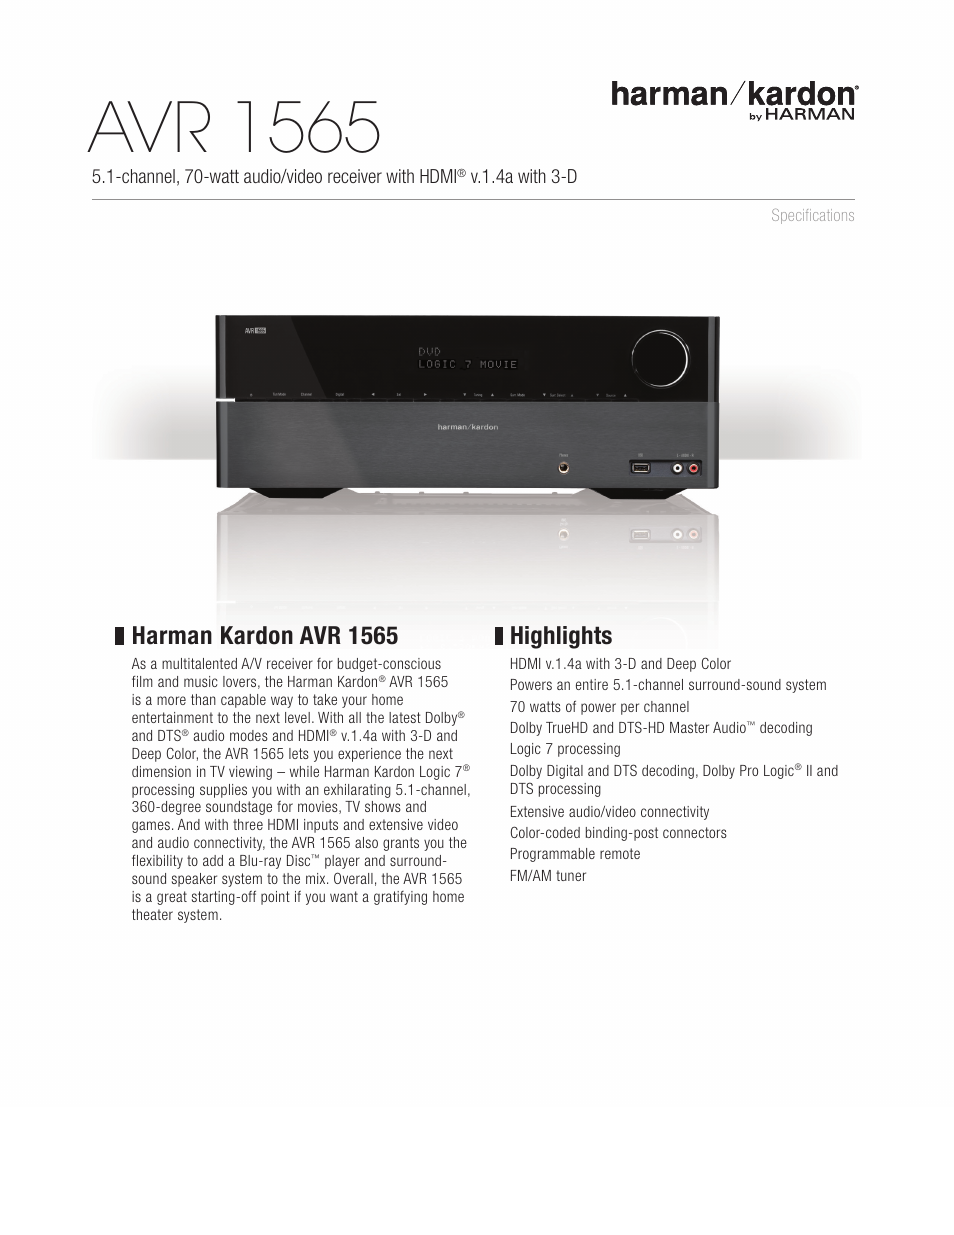 harman kardon avr 225 manual